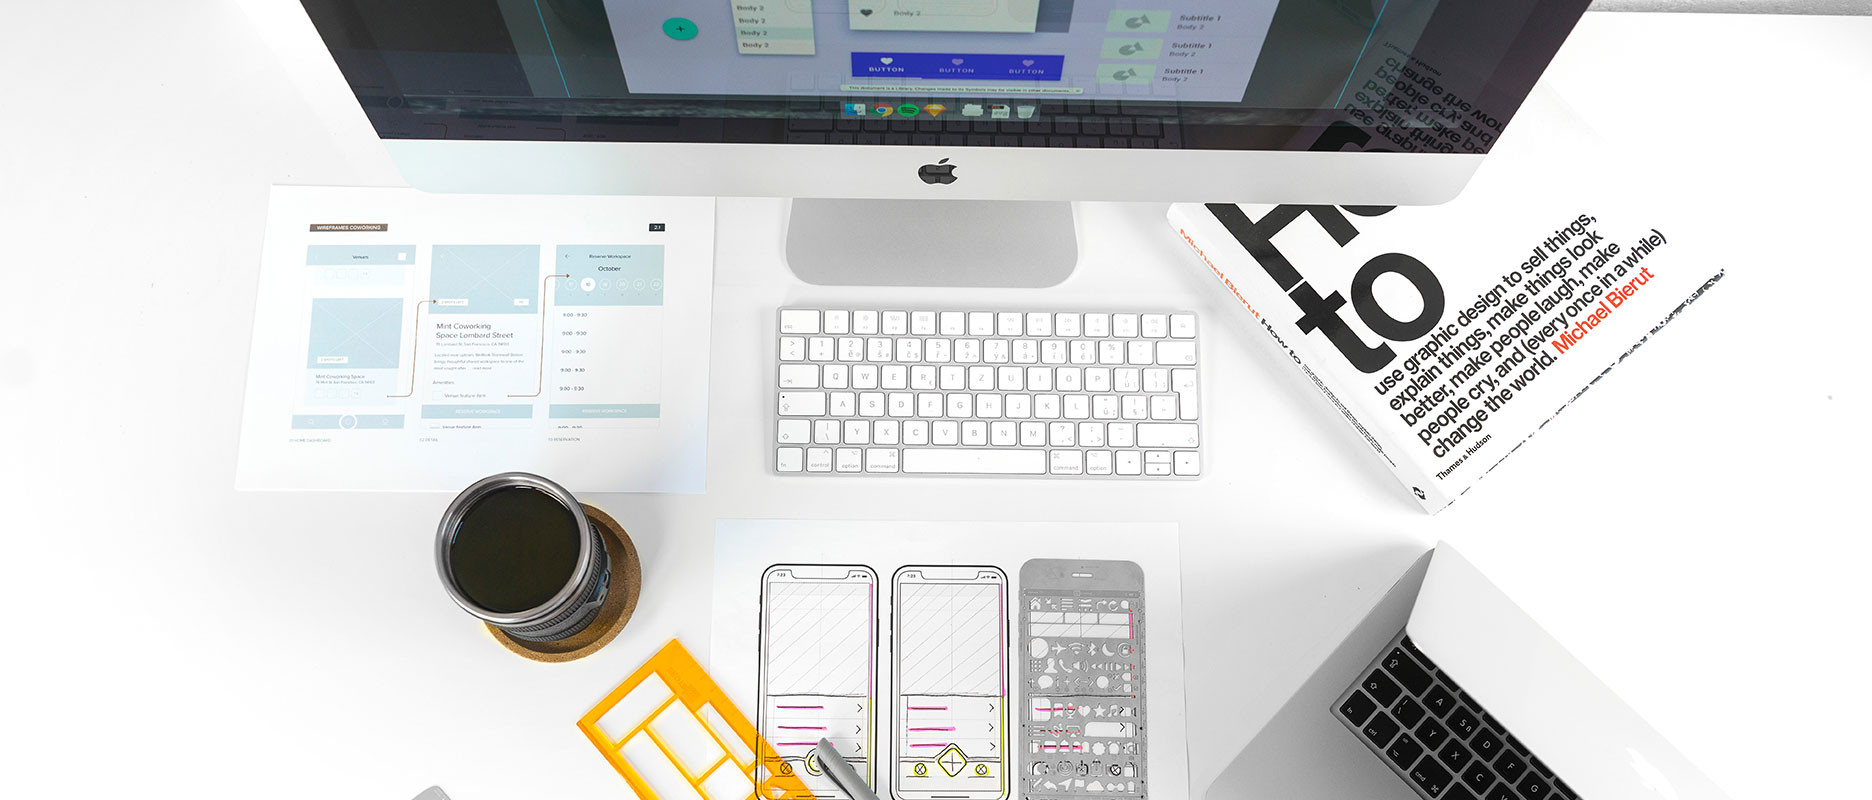 Some design schemes, a book, a cup of coffee and a laptop on a desk